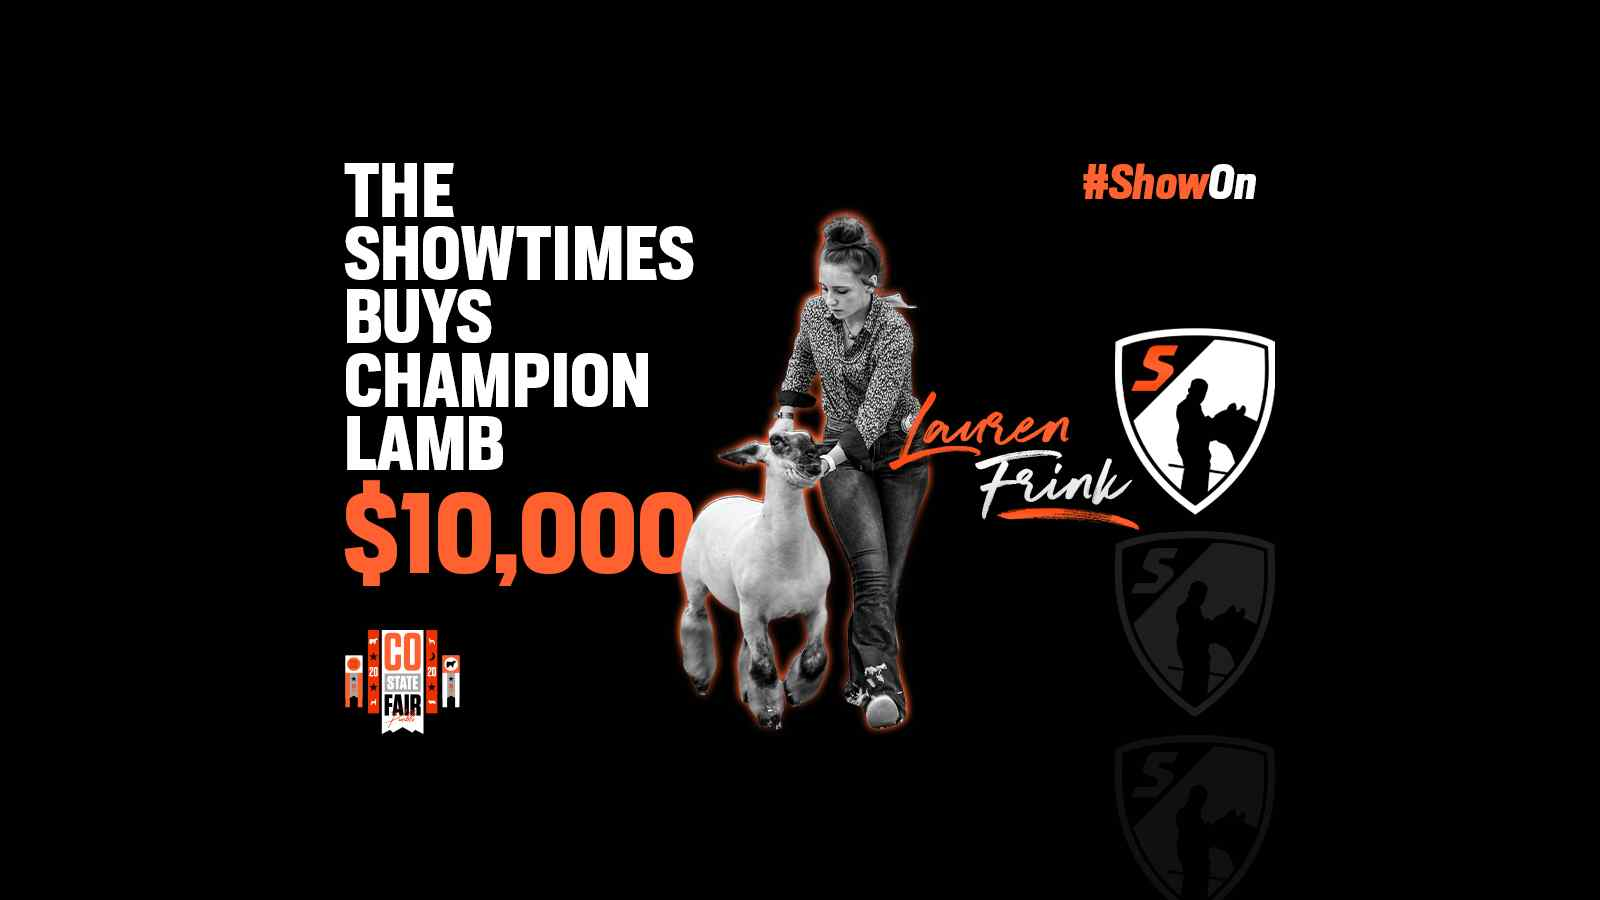 The Showtimes Buys Champion Lamb in Pueblo!